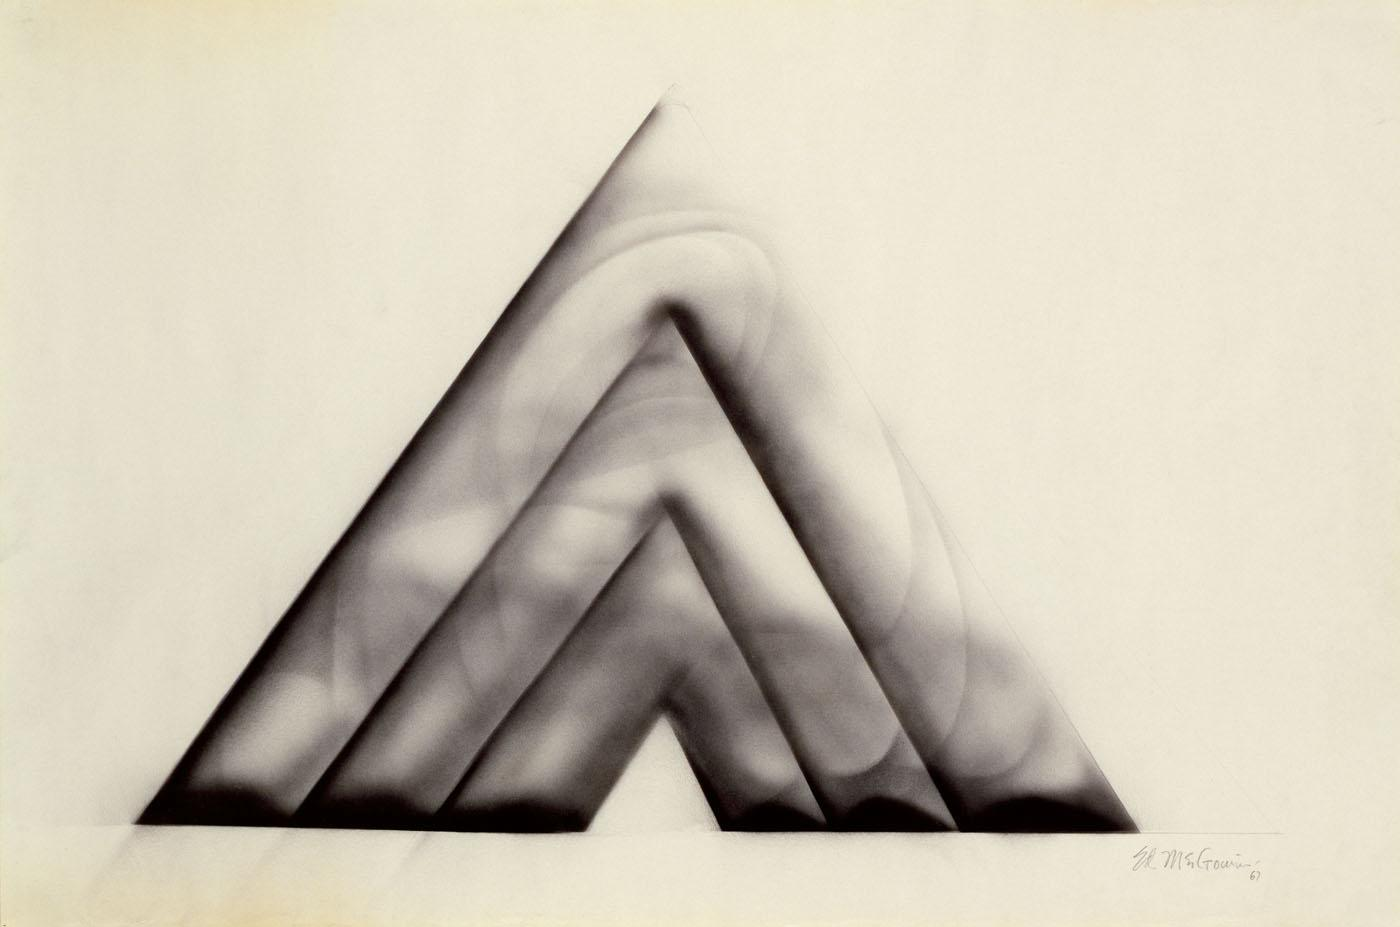 Three Locked Pyramids, Charcoal by Ed Mcgowin